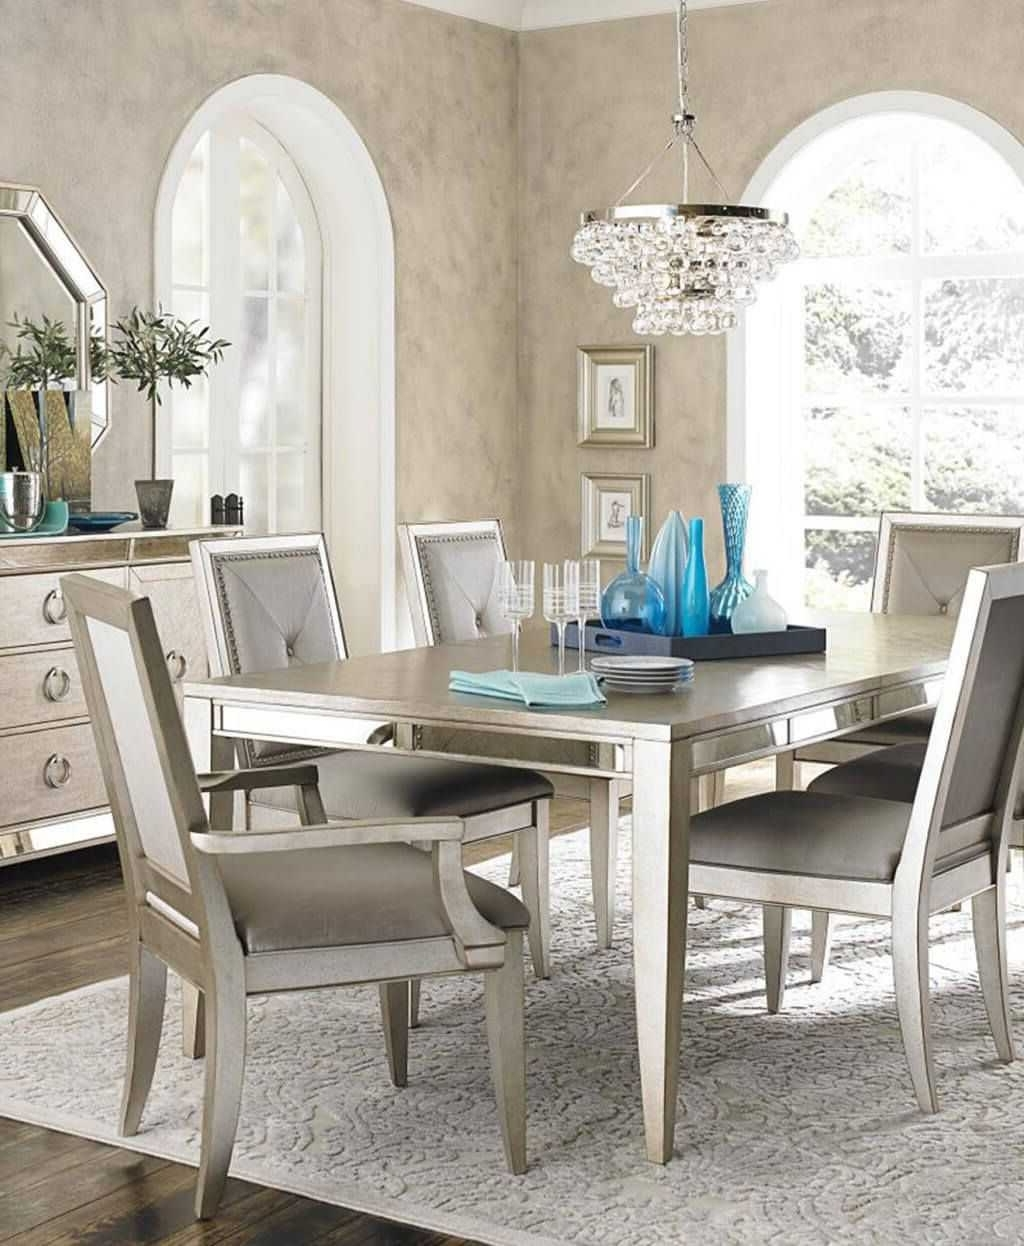 Outstanding Macys Dining Room Chairs Collection Including Macy S Inside Favorite Macie Round Dining Tables (View 23 of 25)